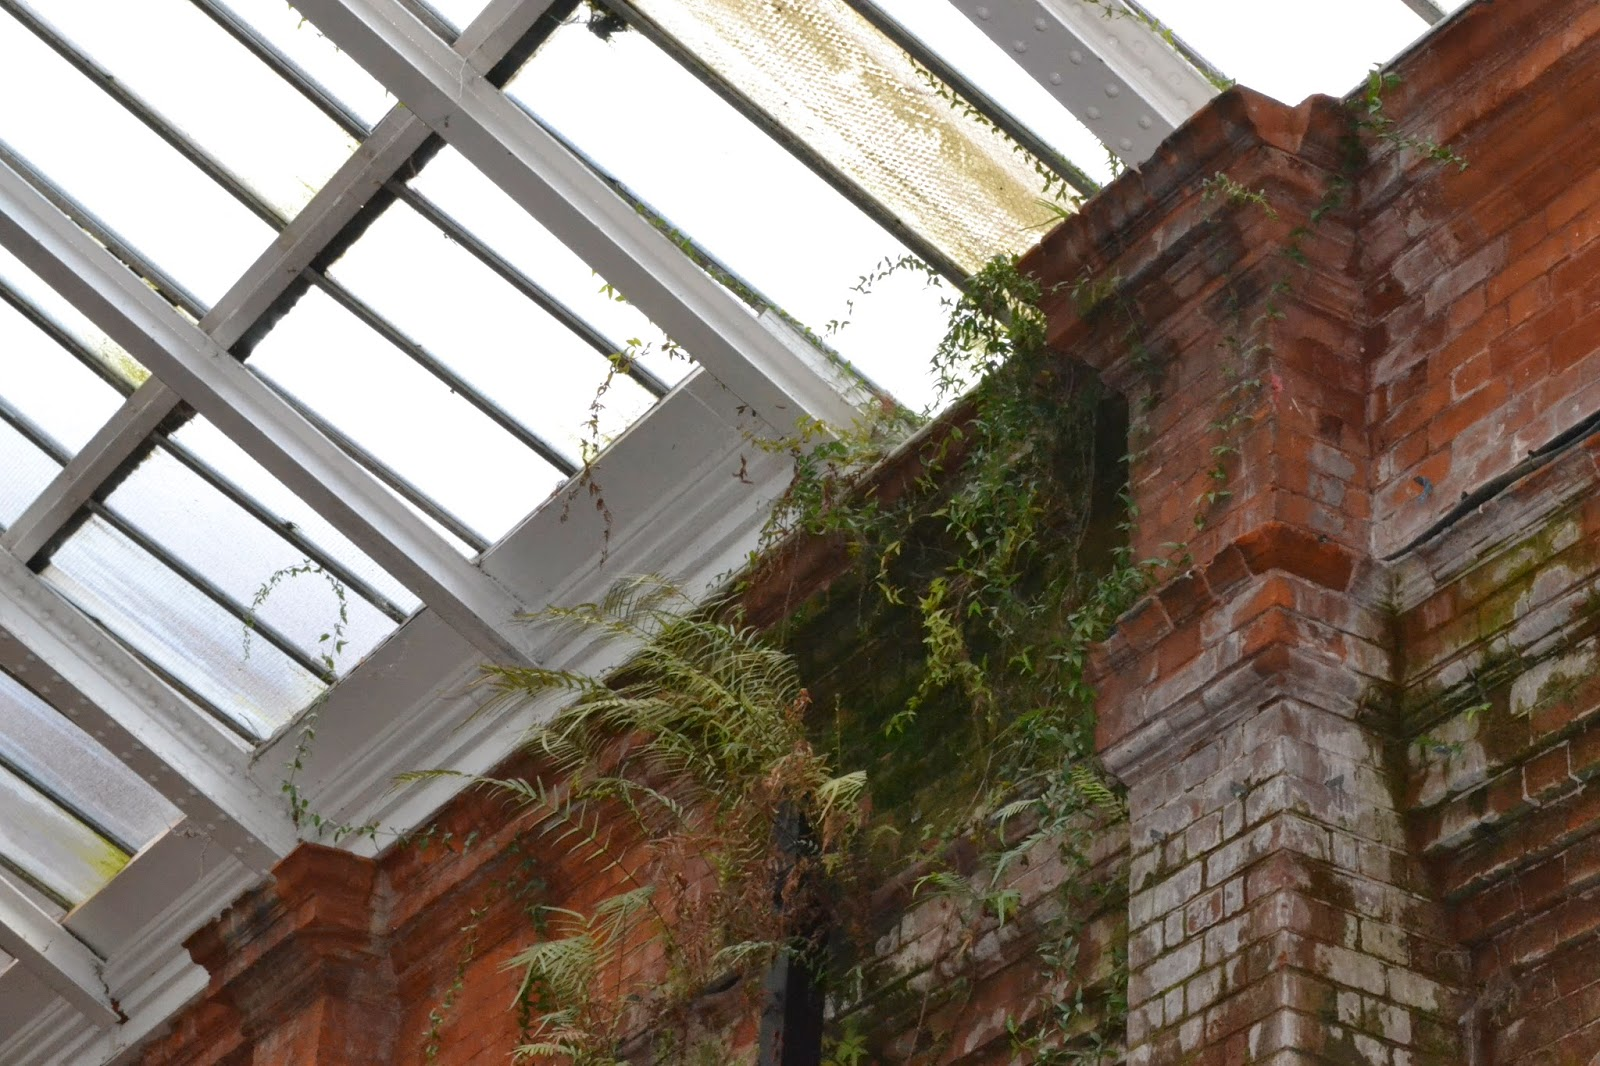 Plants reclaiming the old brickwork